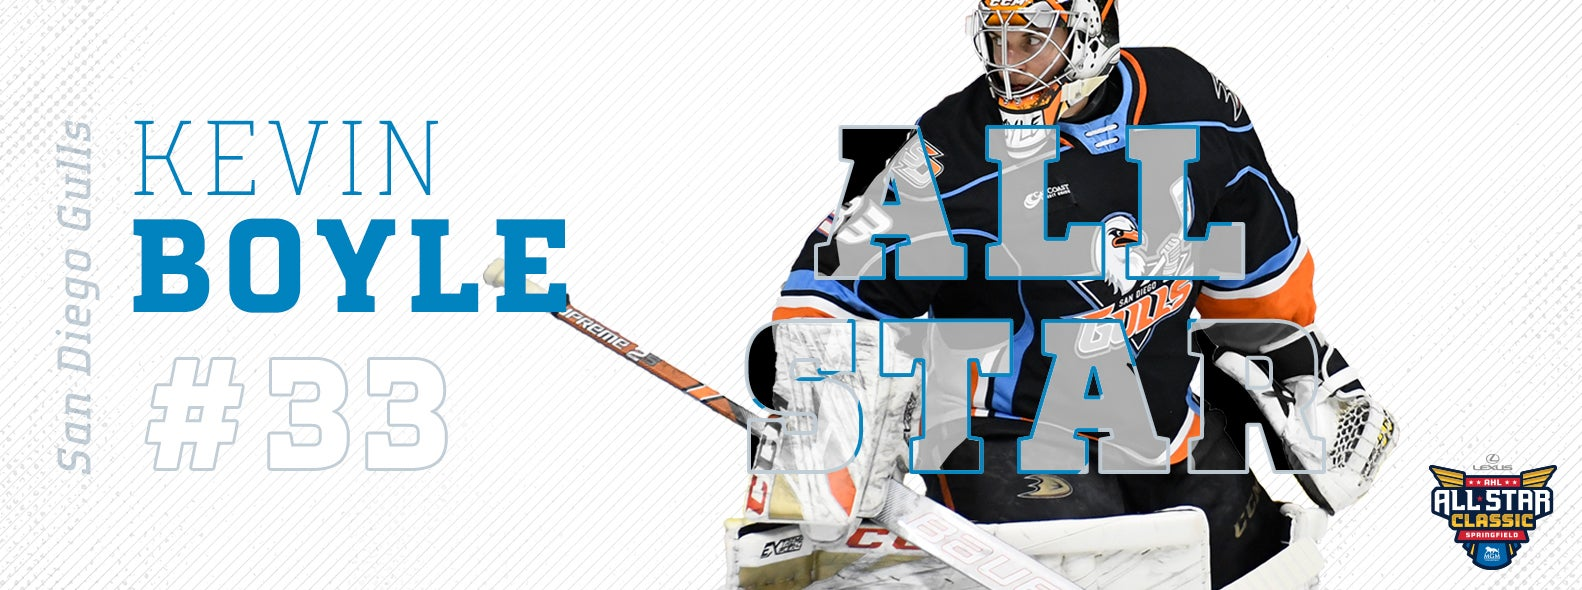 Boyle Added to AHL All Star Roster